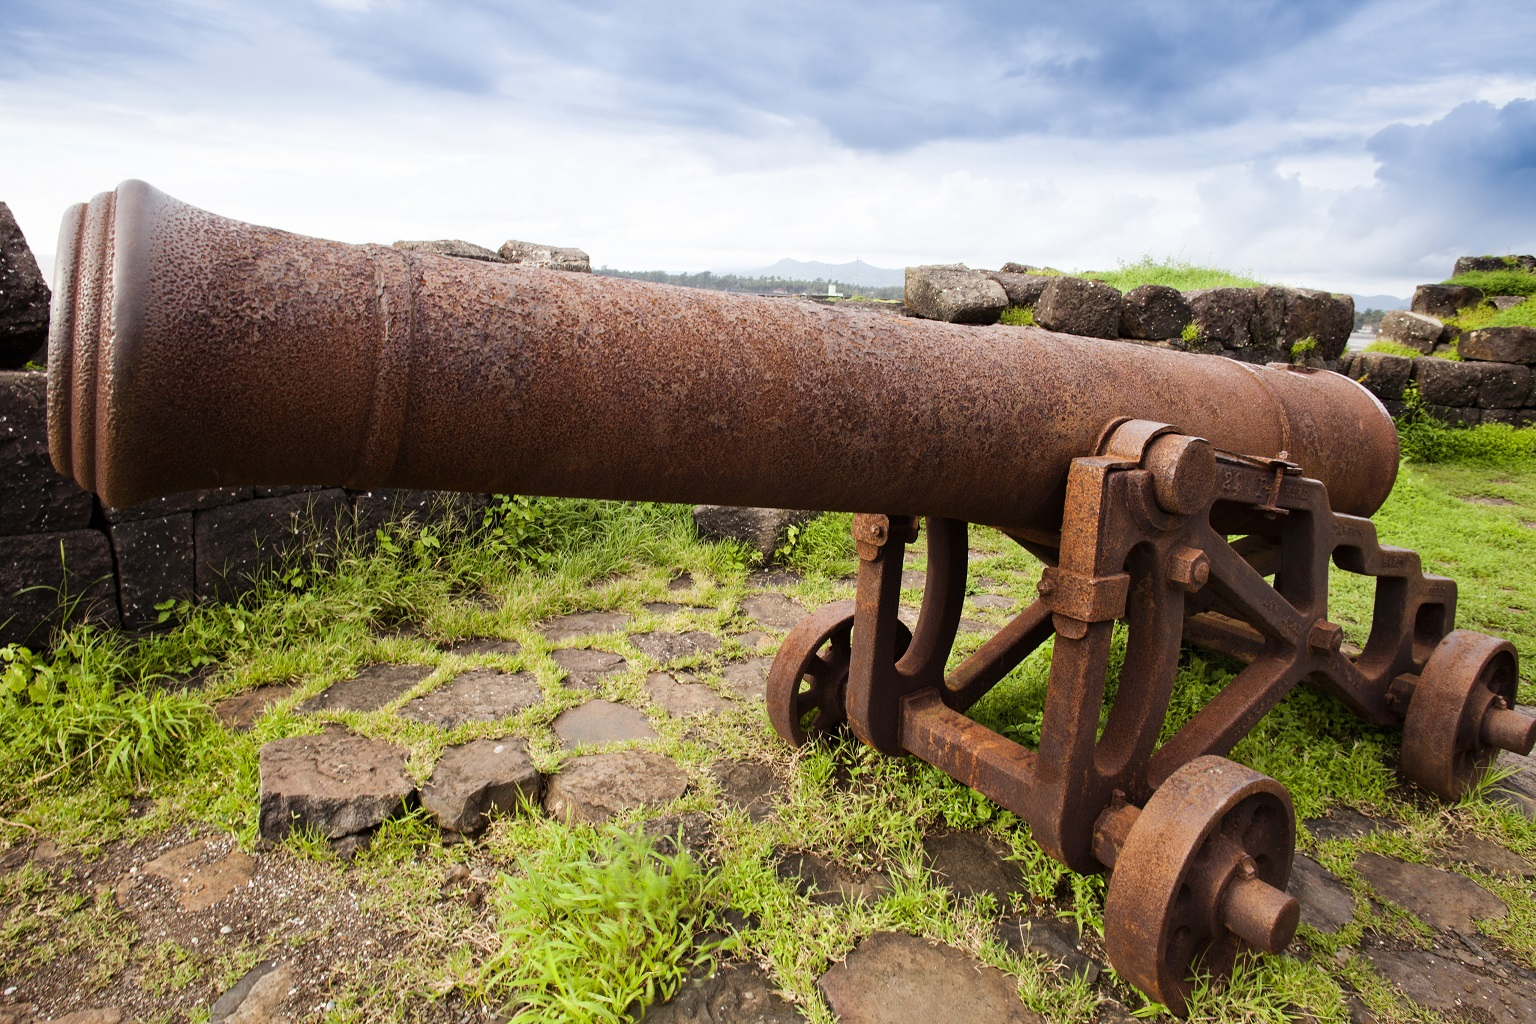 cannons-on-the-beach-alibag-raigad-district-konkan-maharashtra